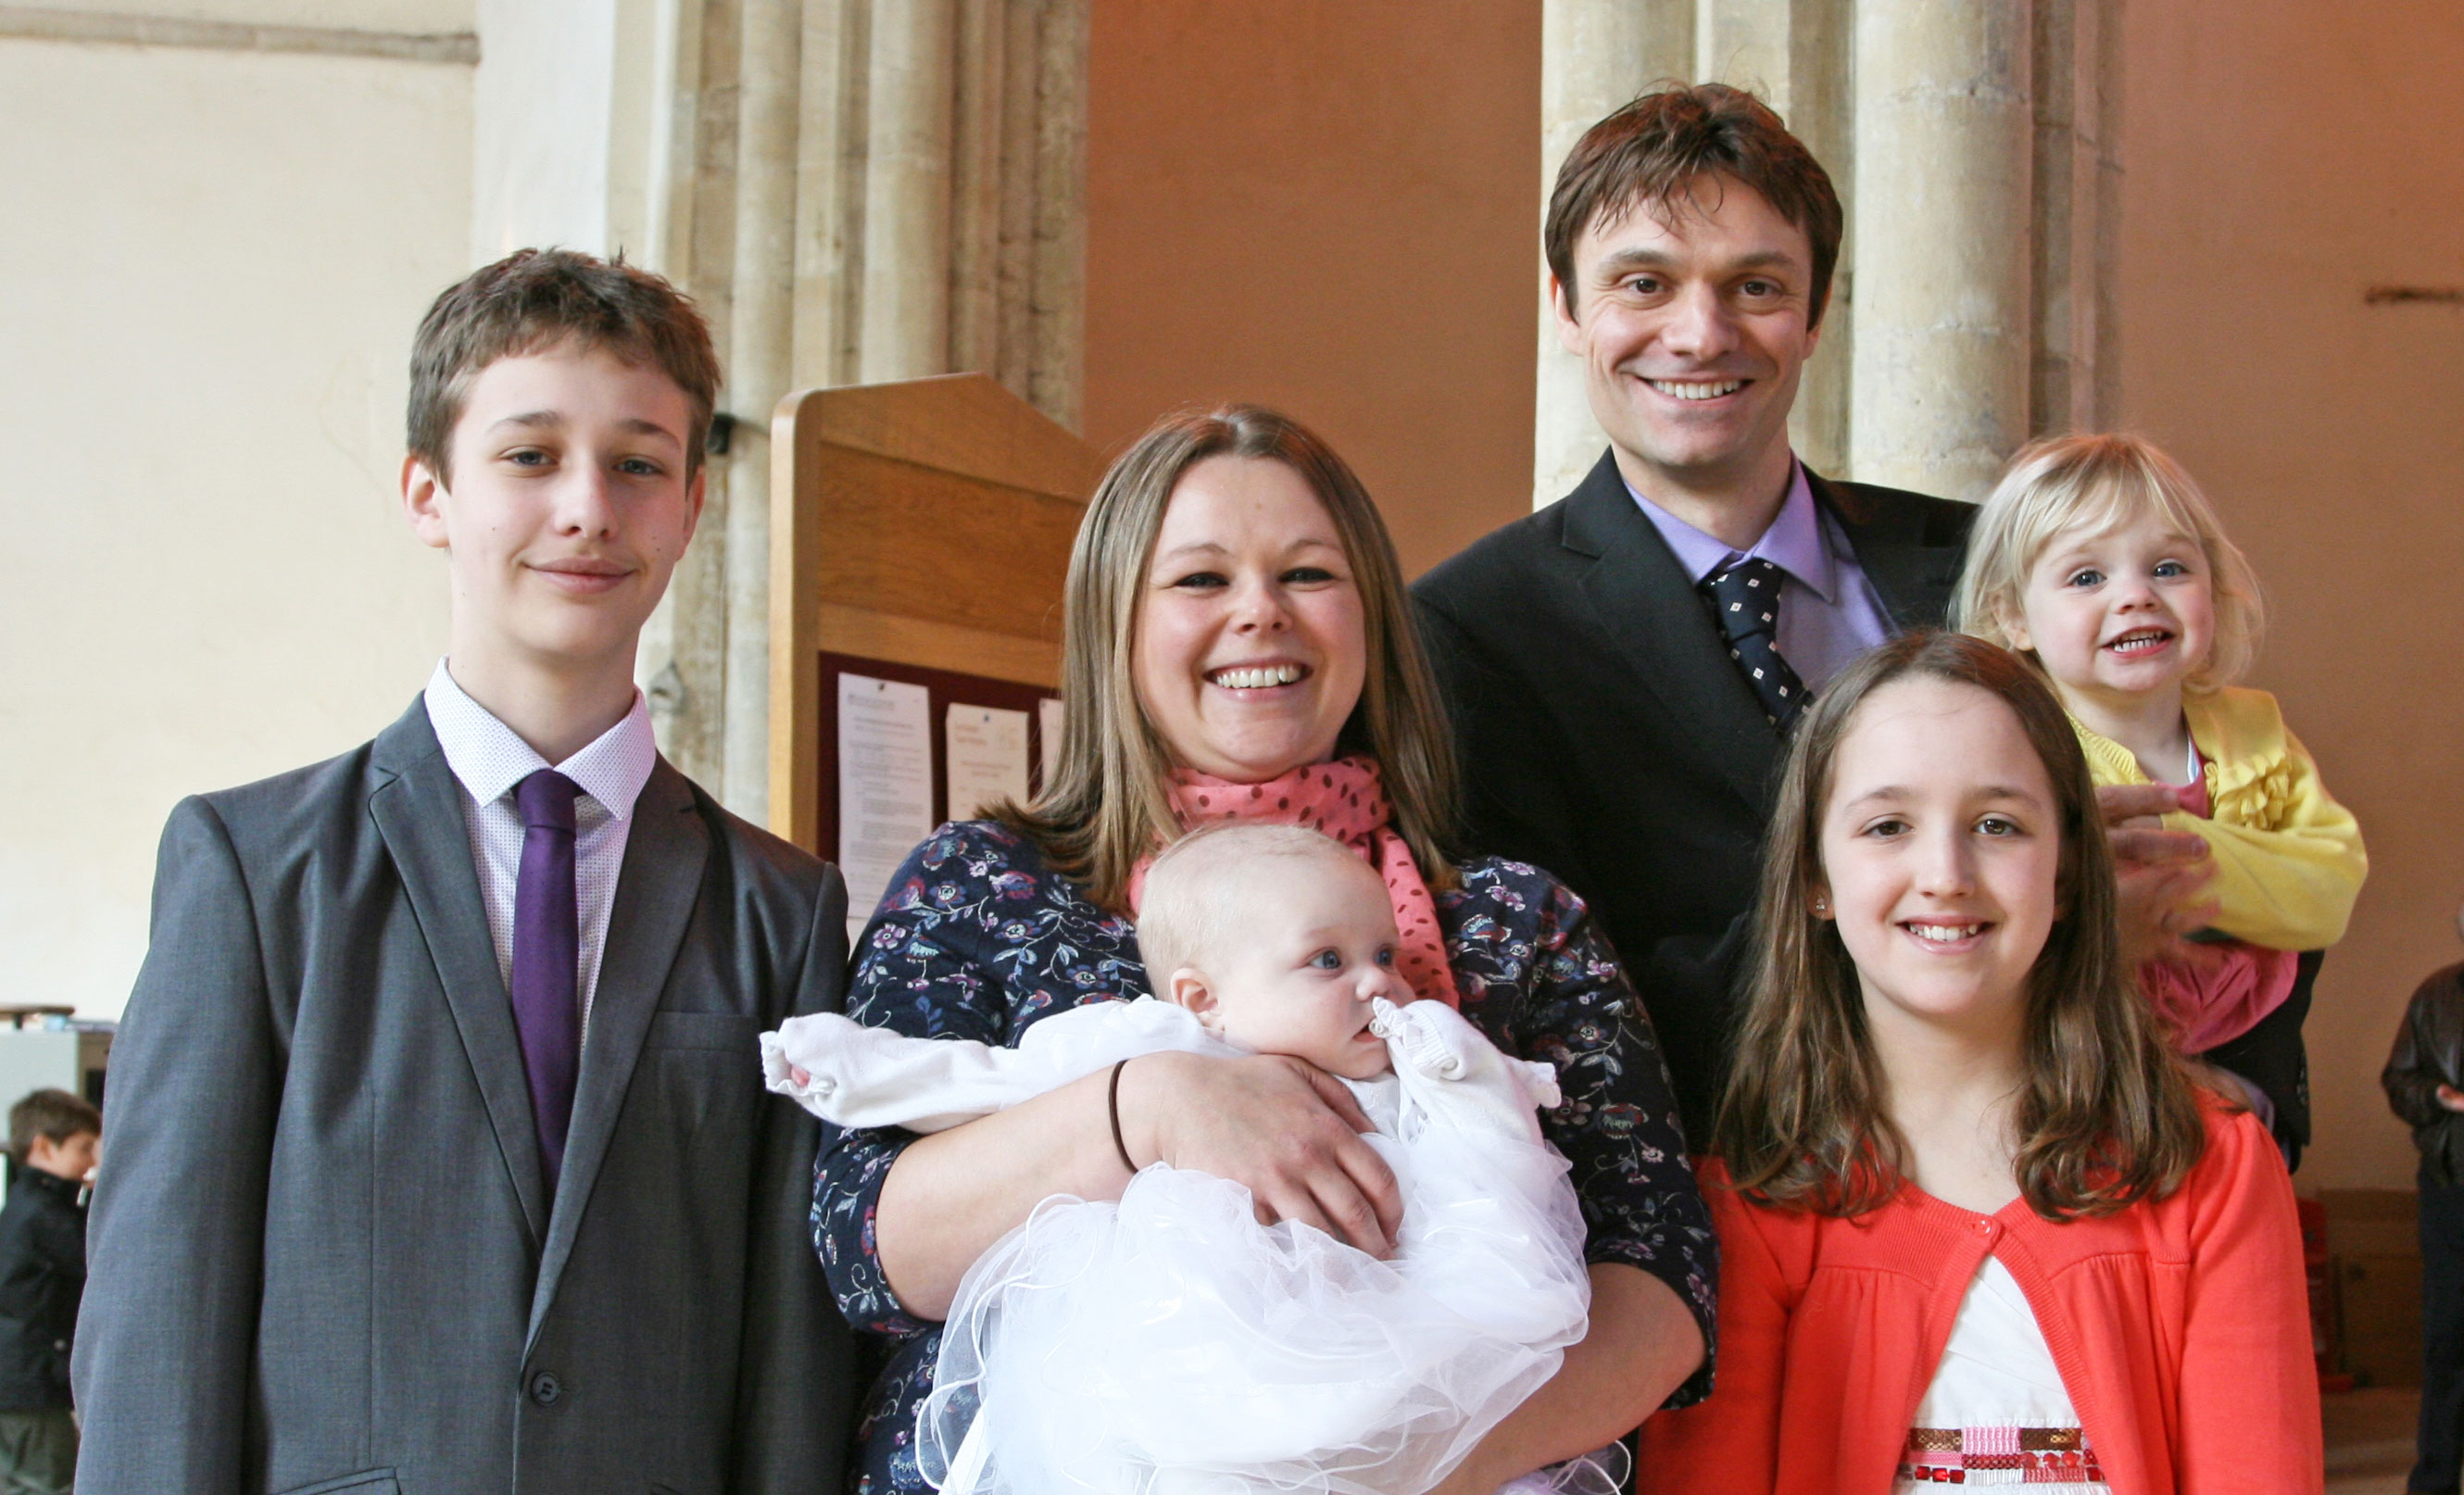 What to donate for christenings